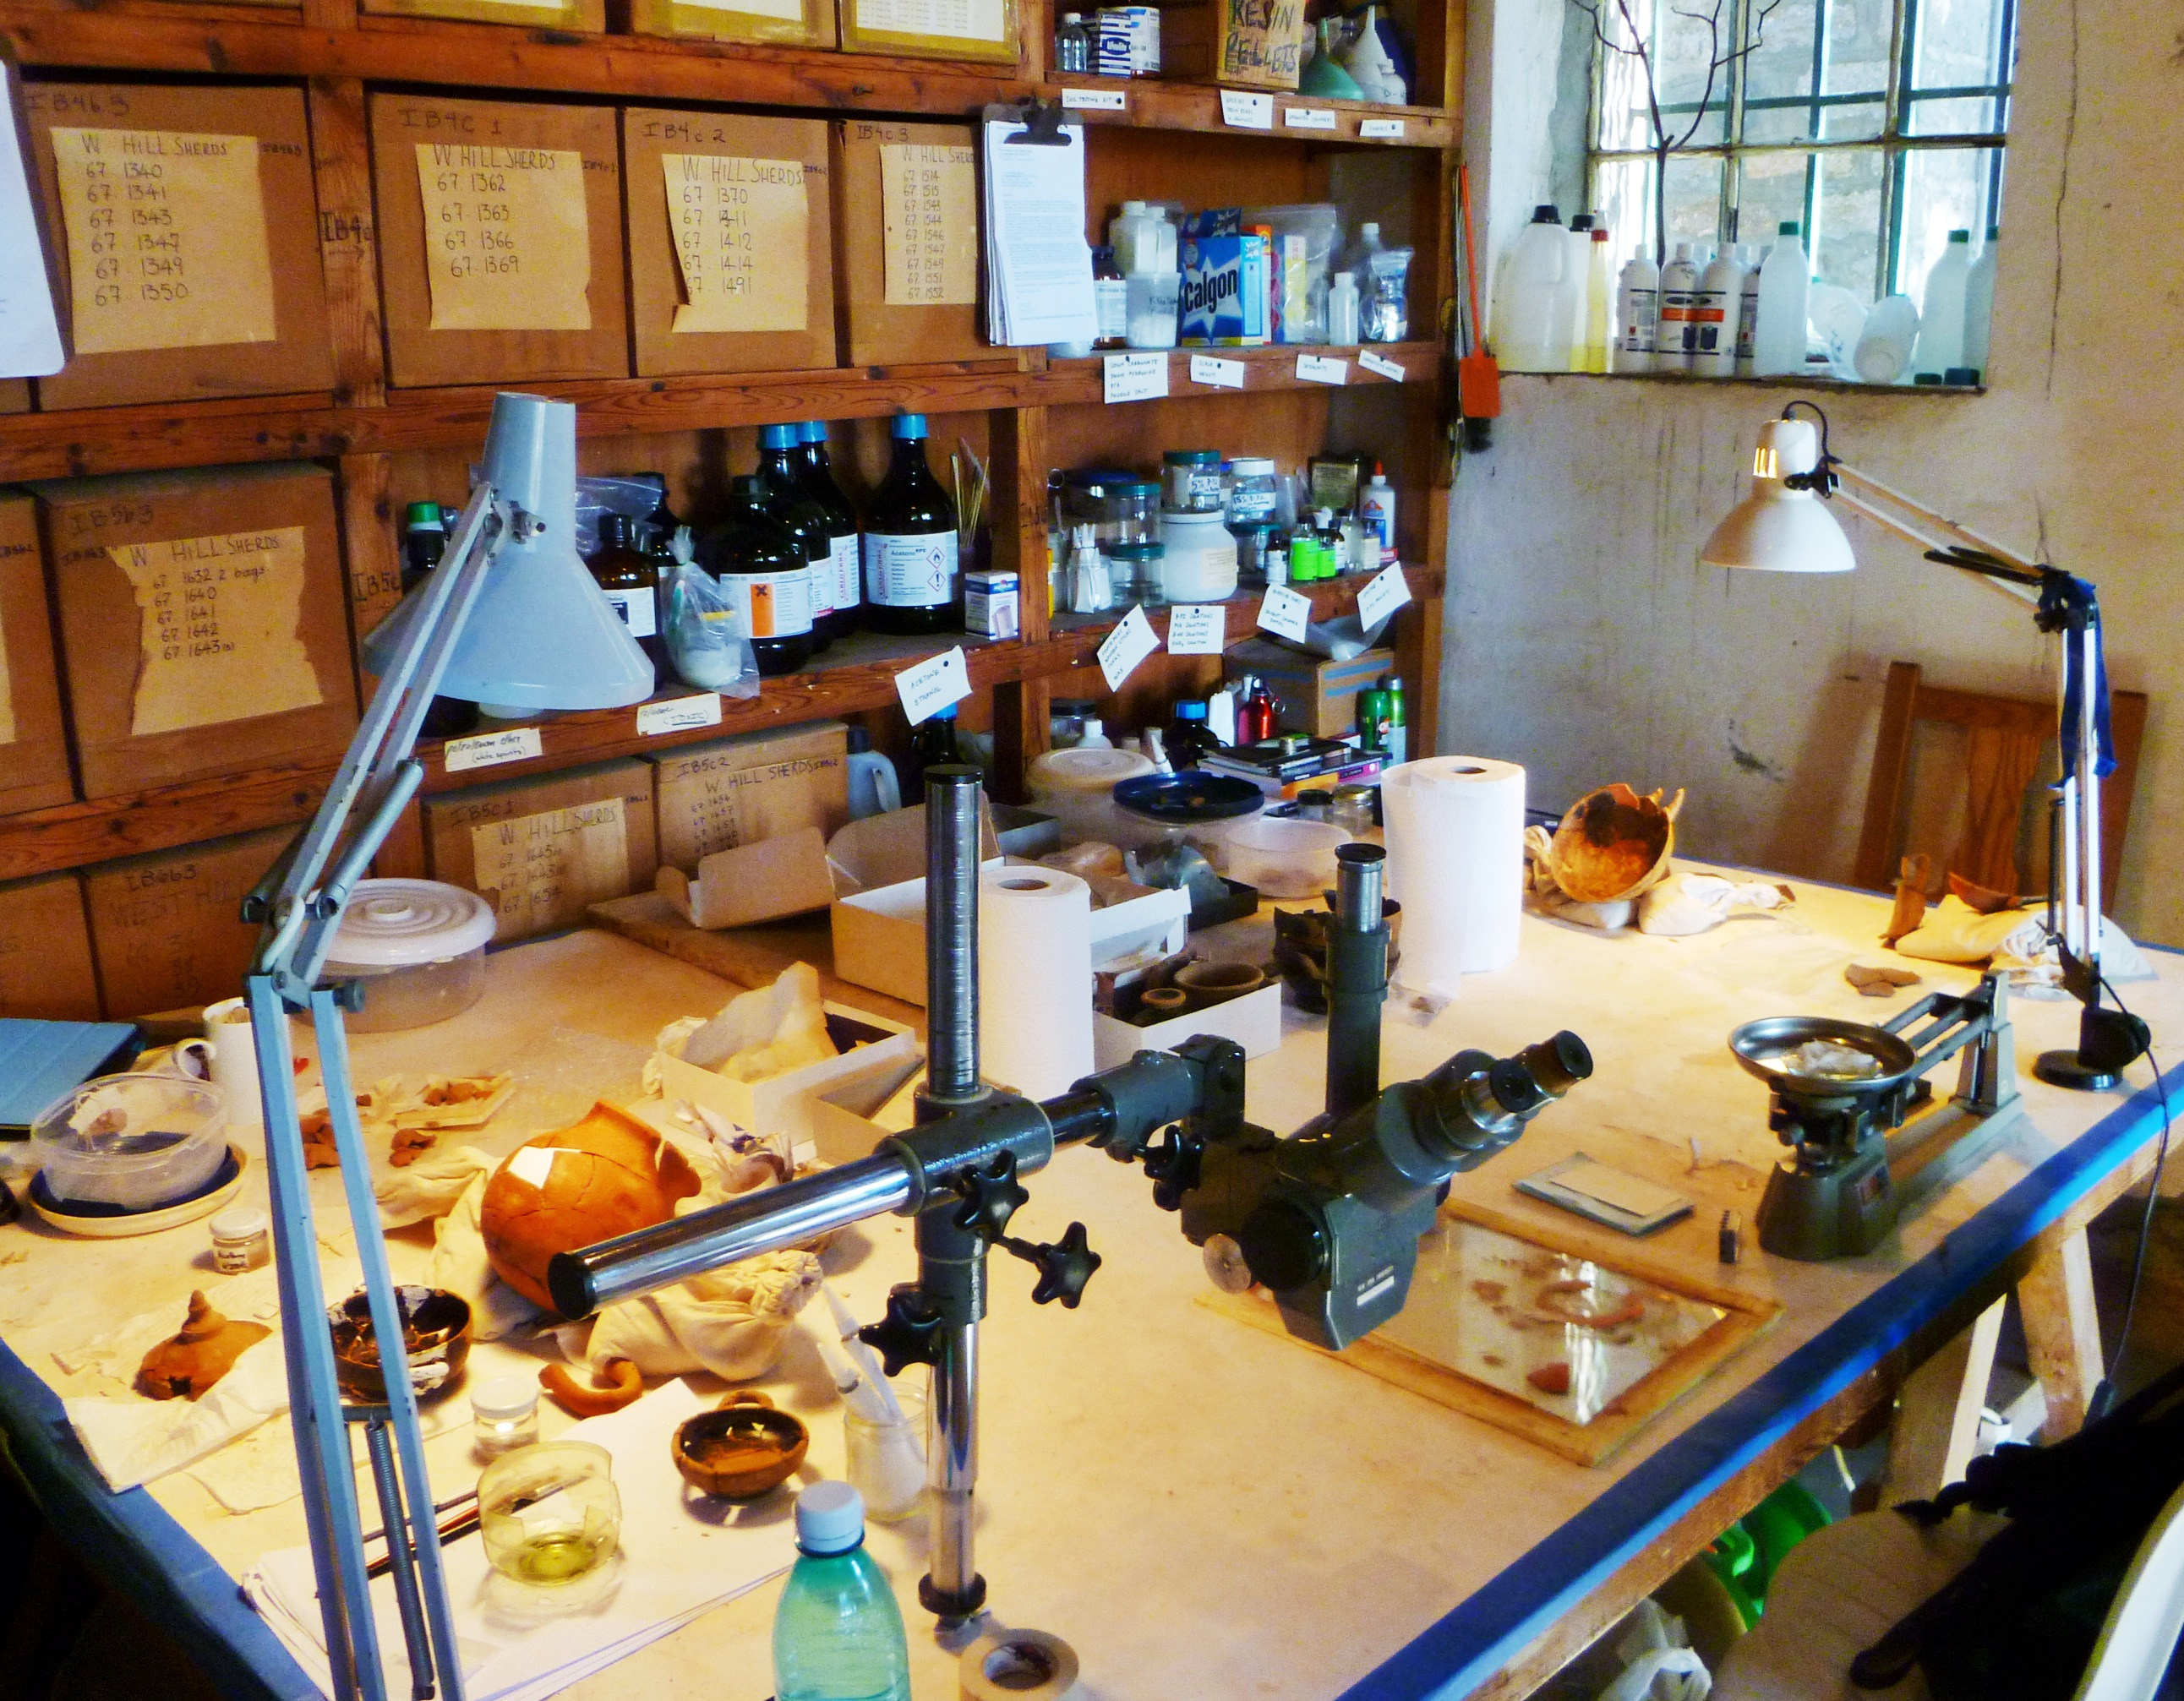 Tight quarters for three conservators... not your typical museum conservation lab.